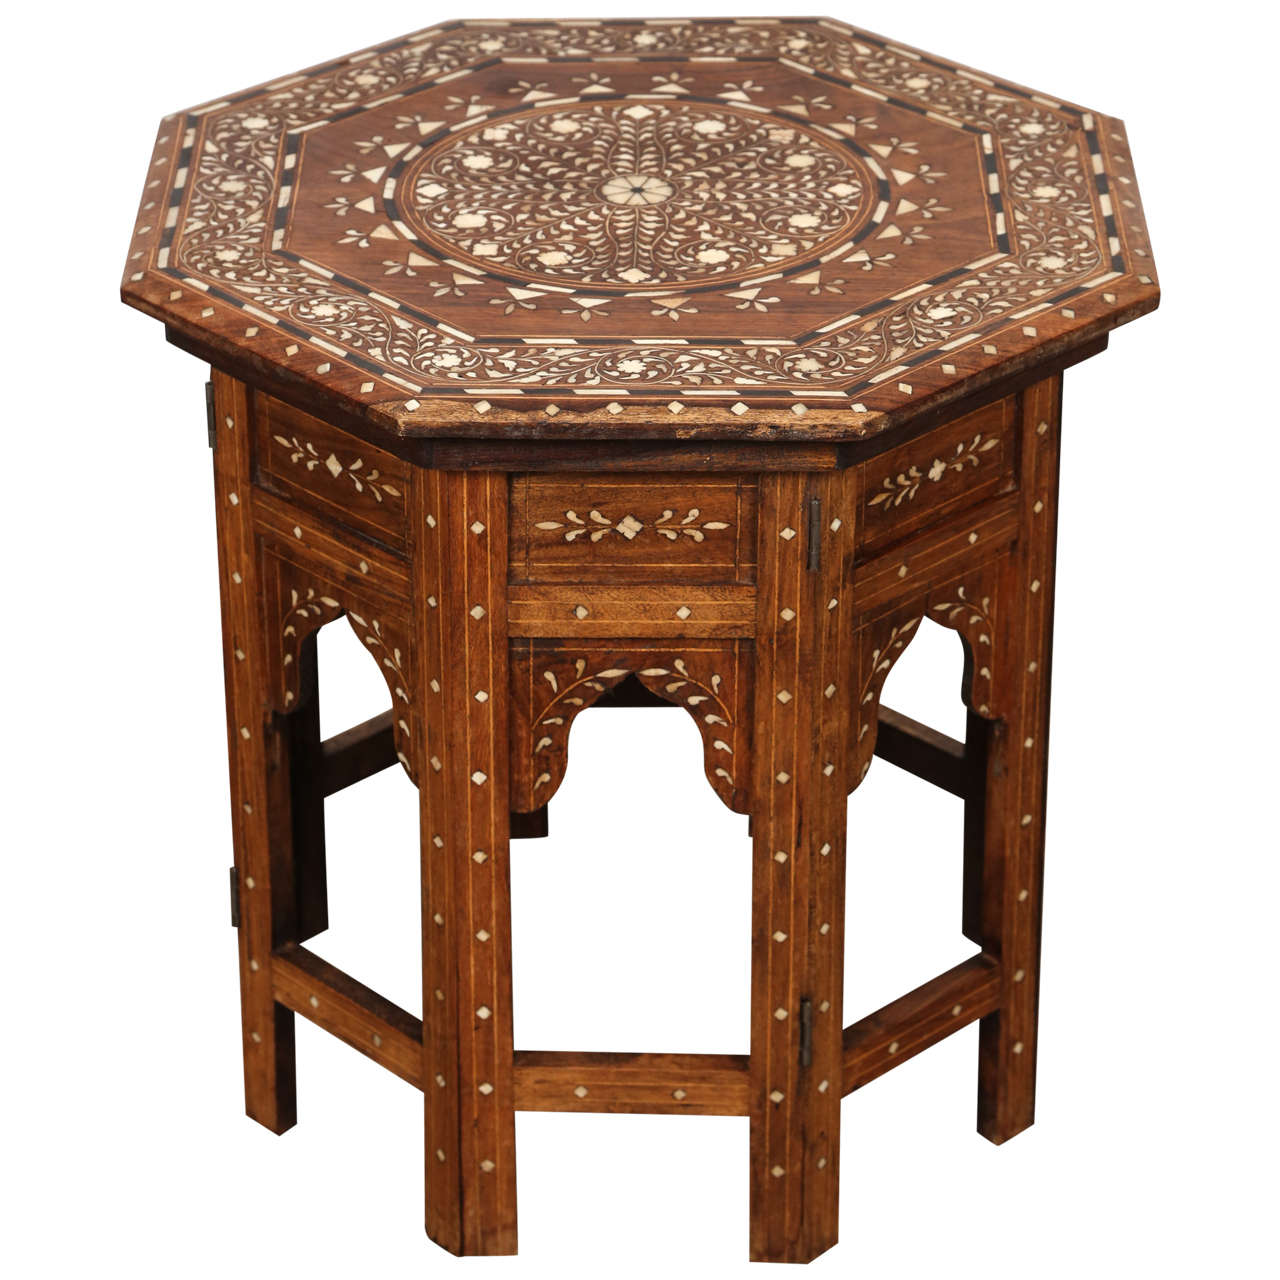 Anglo Indian Inlaid Octagonal Side Table 1